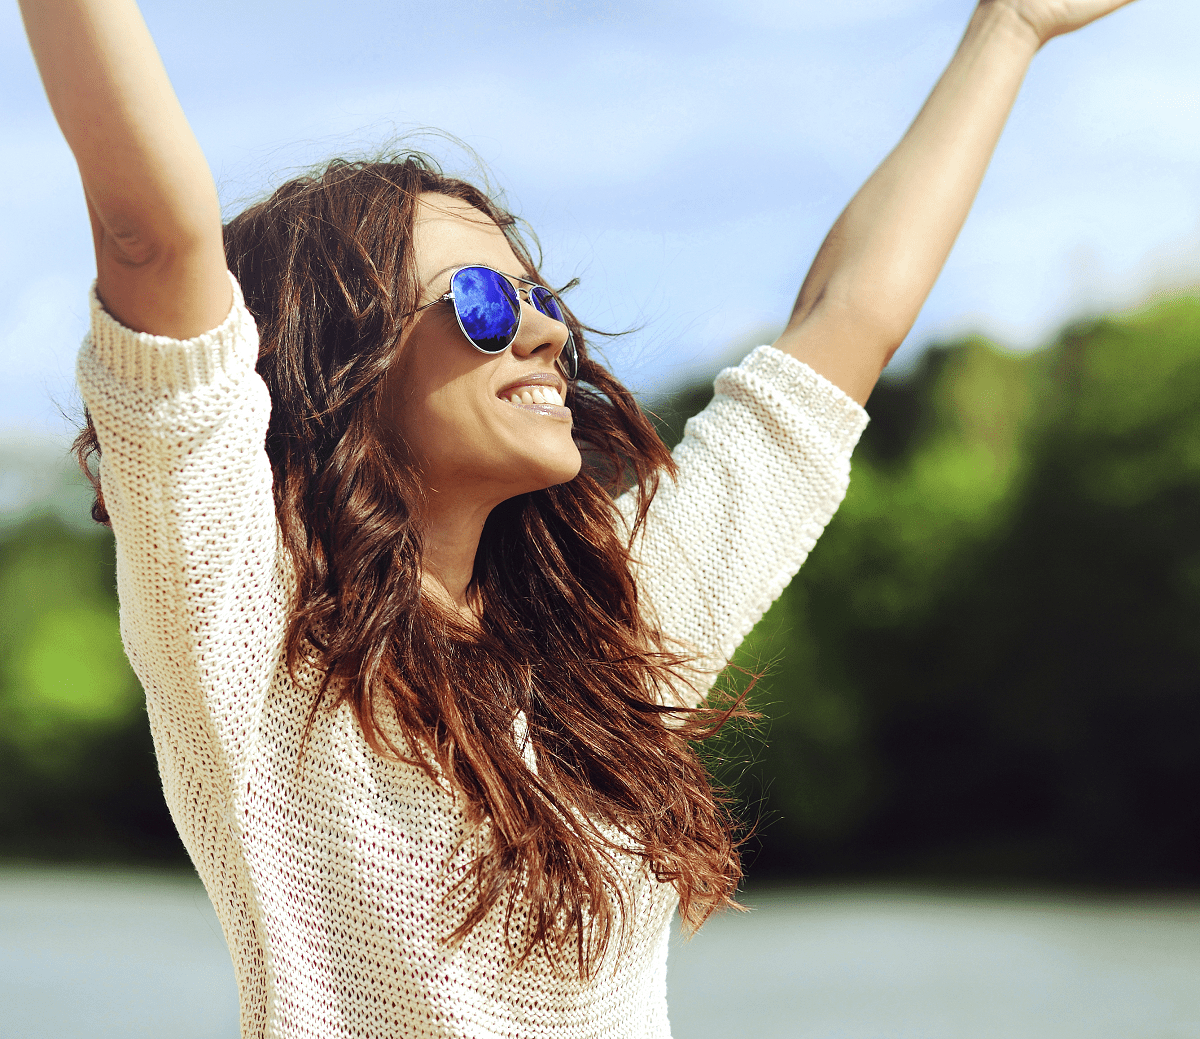 20 Simple Things You Should Do Now To Make Your Life Better In 5 Years